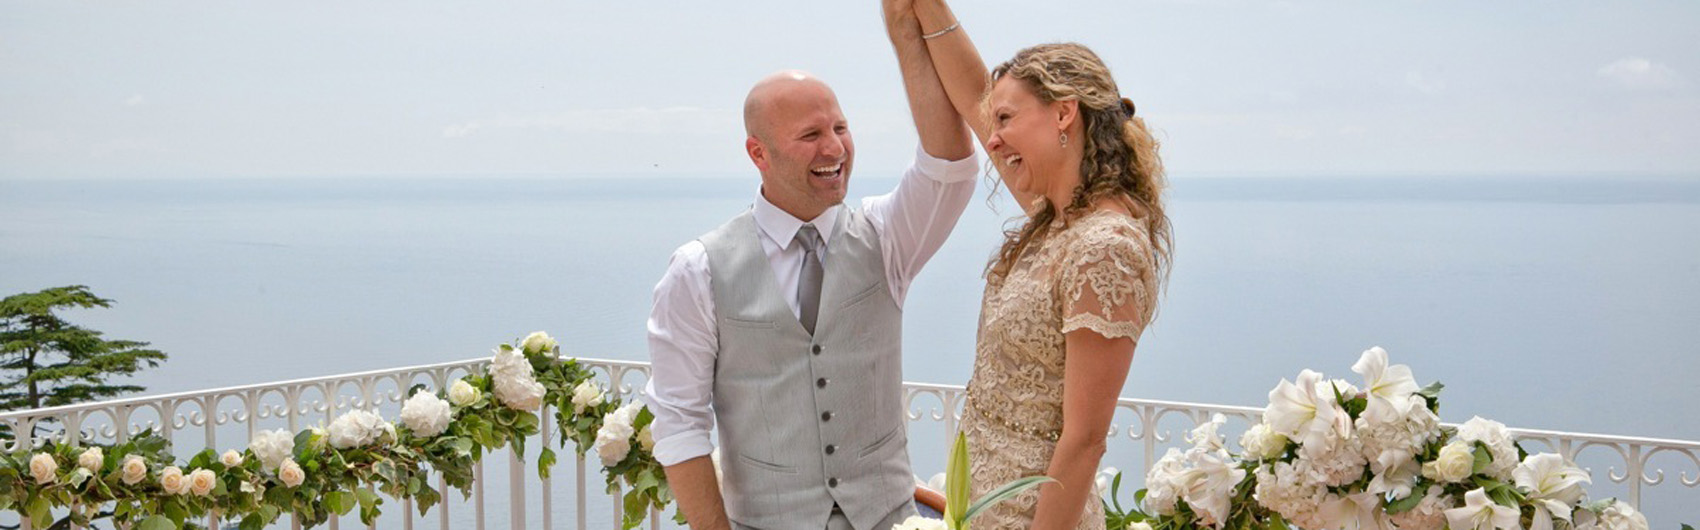 civil-wedding-positano